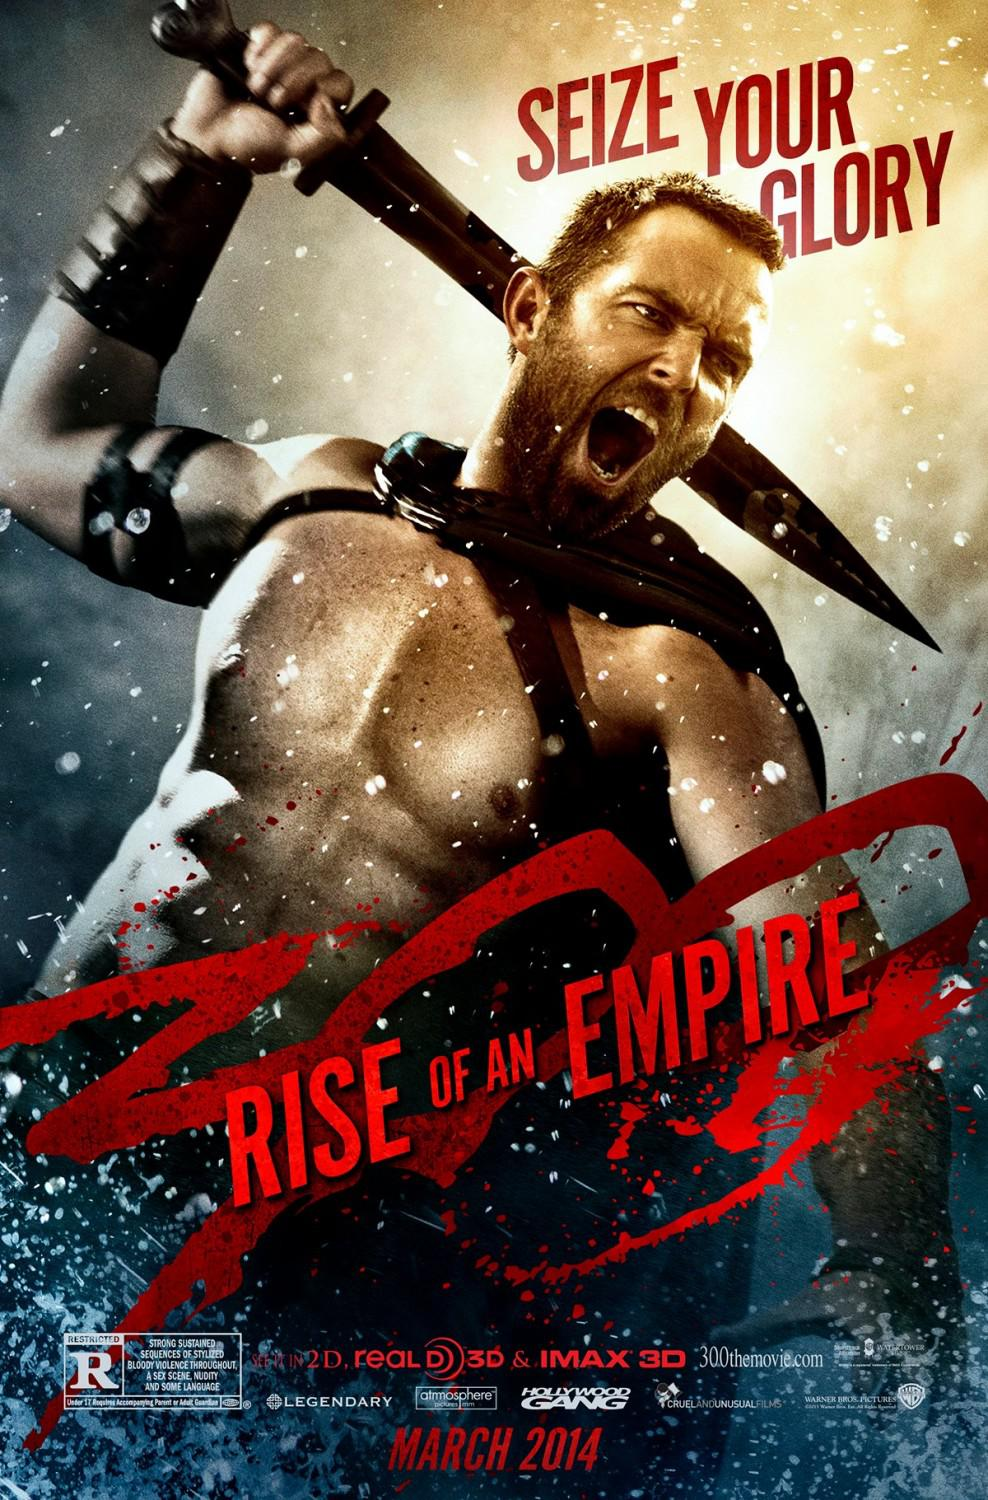 300 Alba di un Impero - Three hundred rise of an Empire - seize your glory